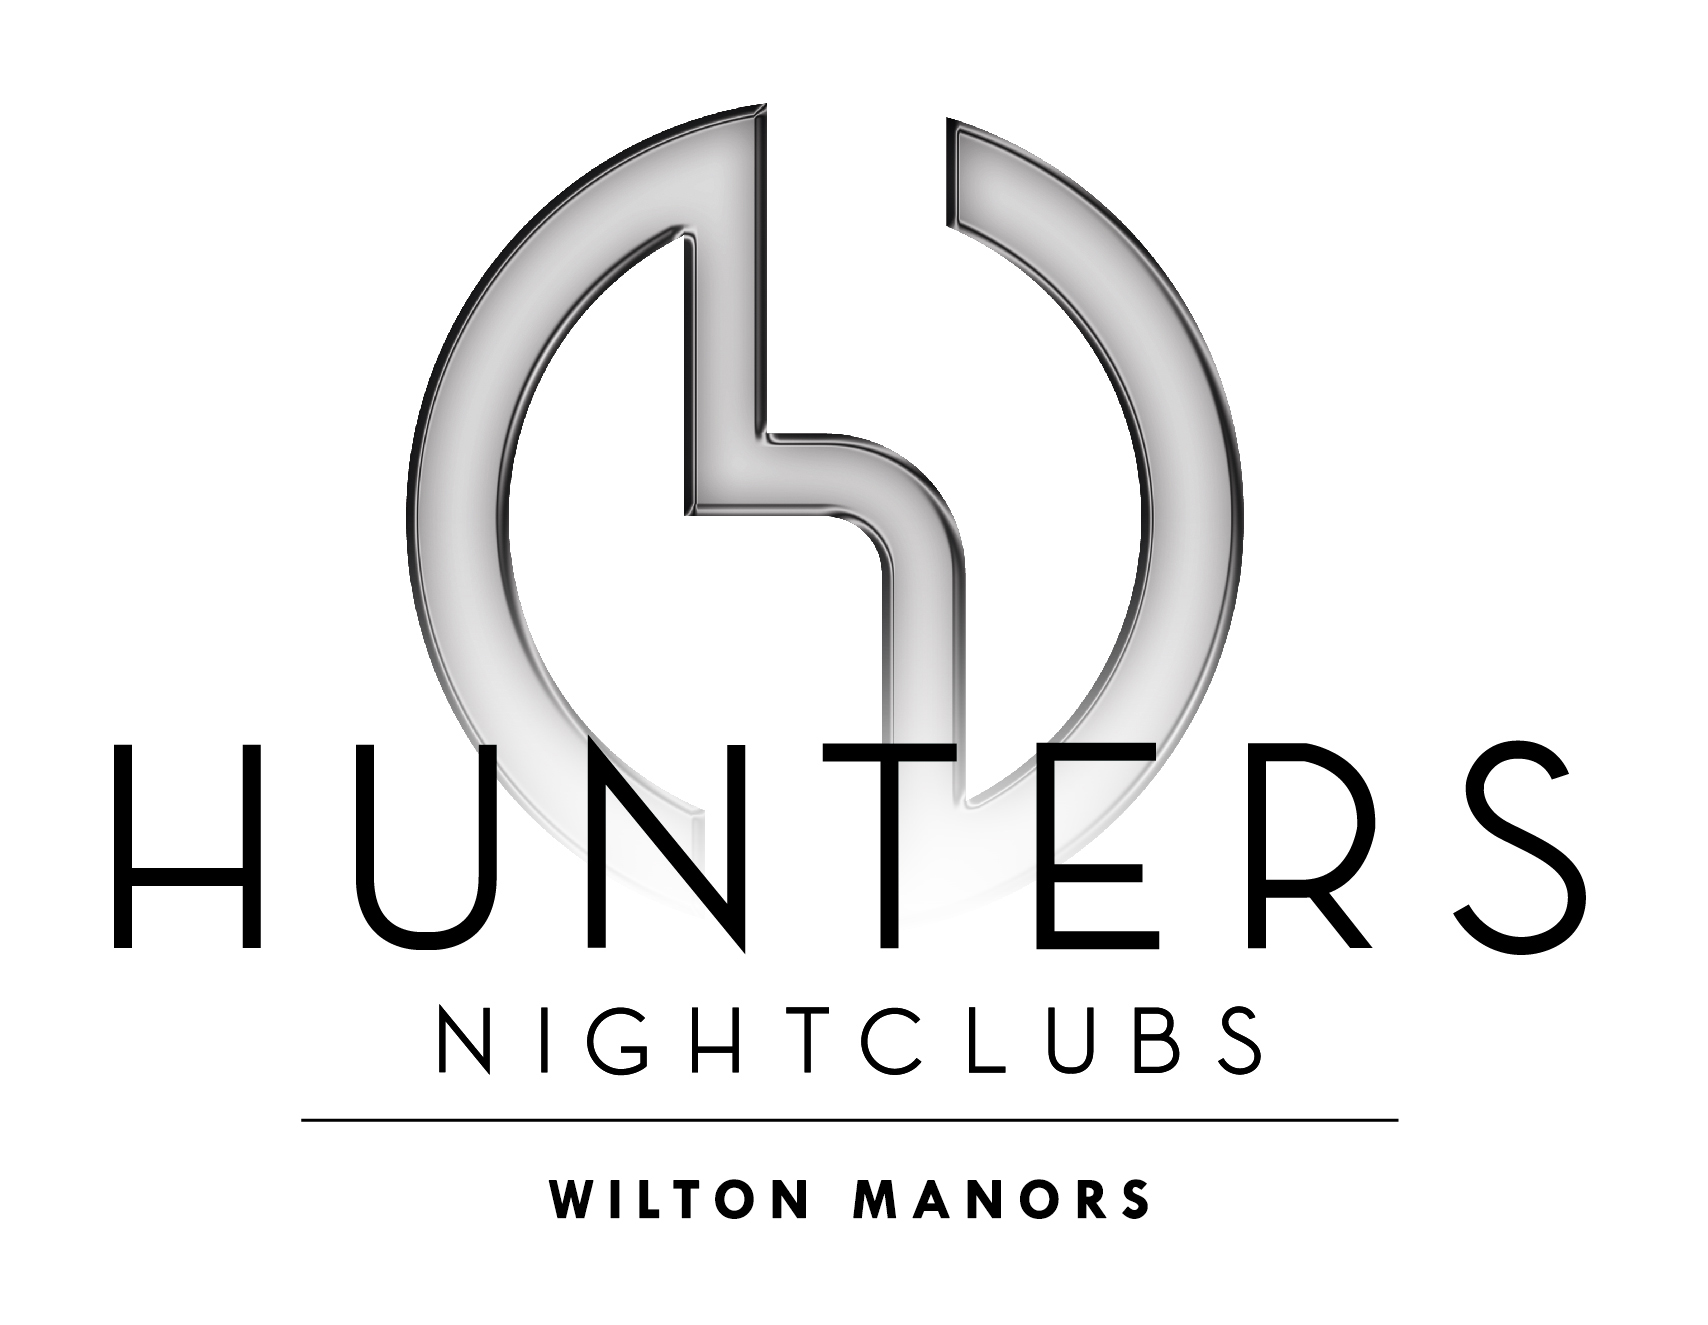 HuntersLogo WiltonManors